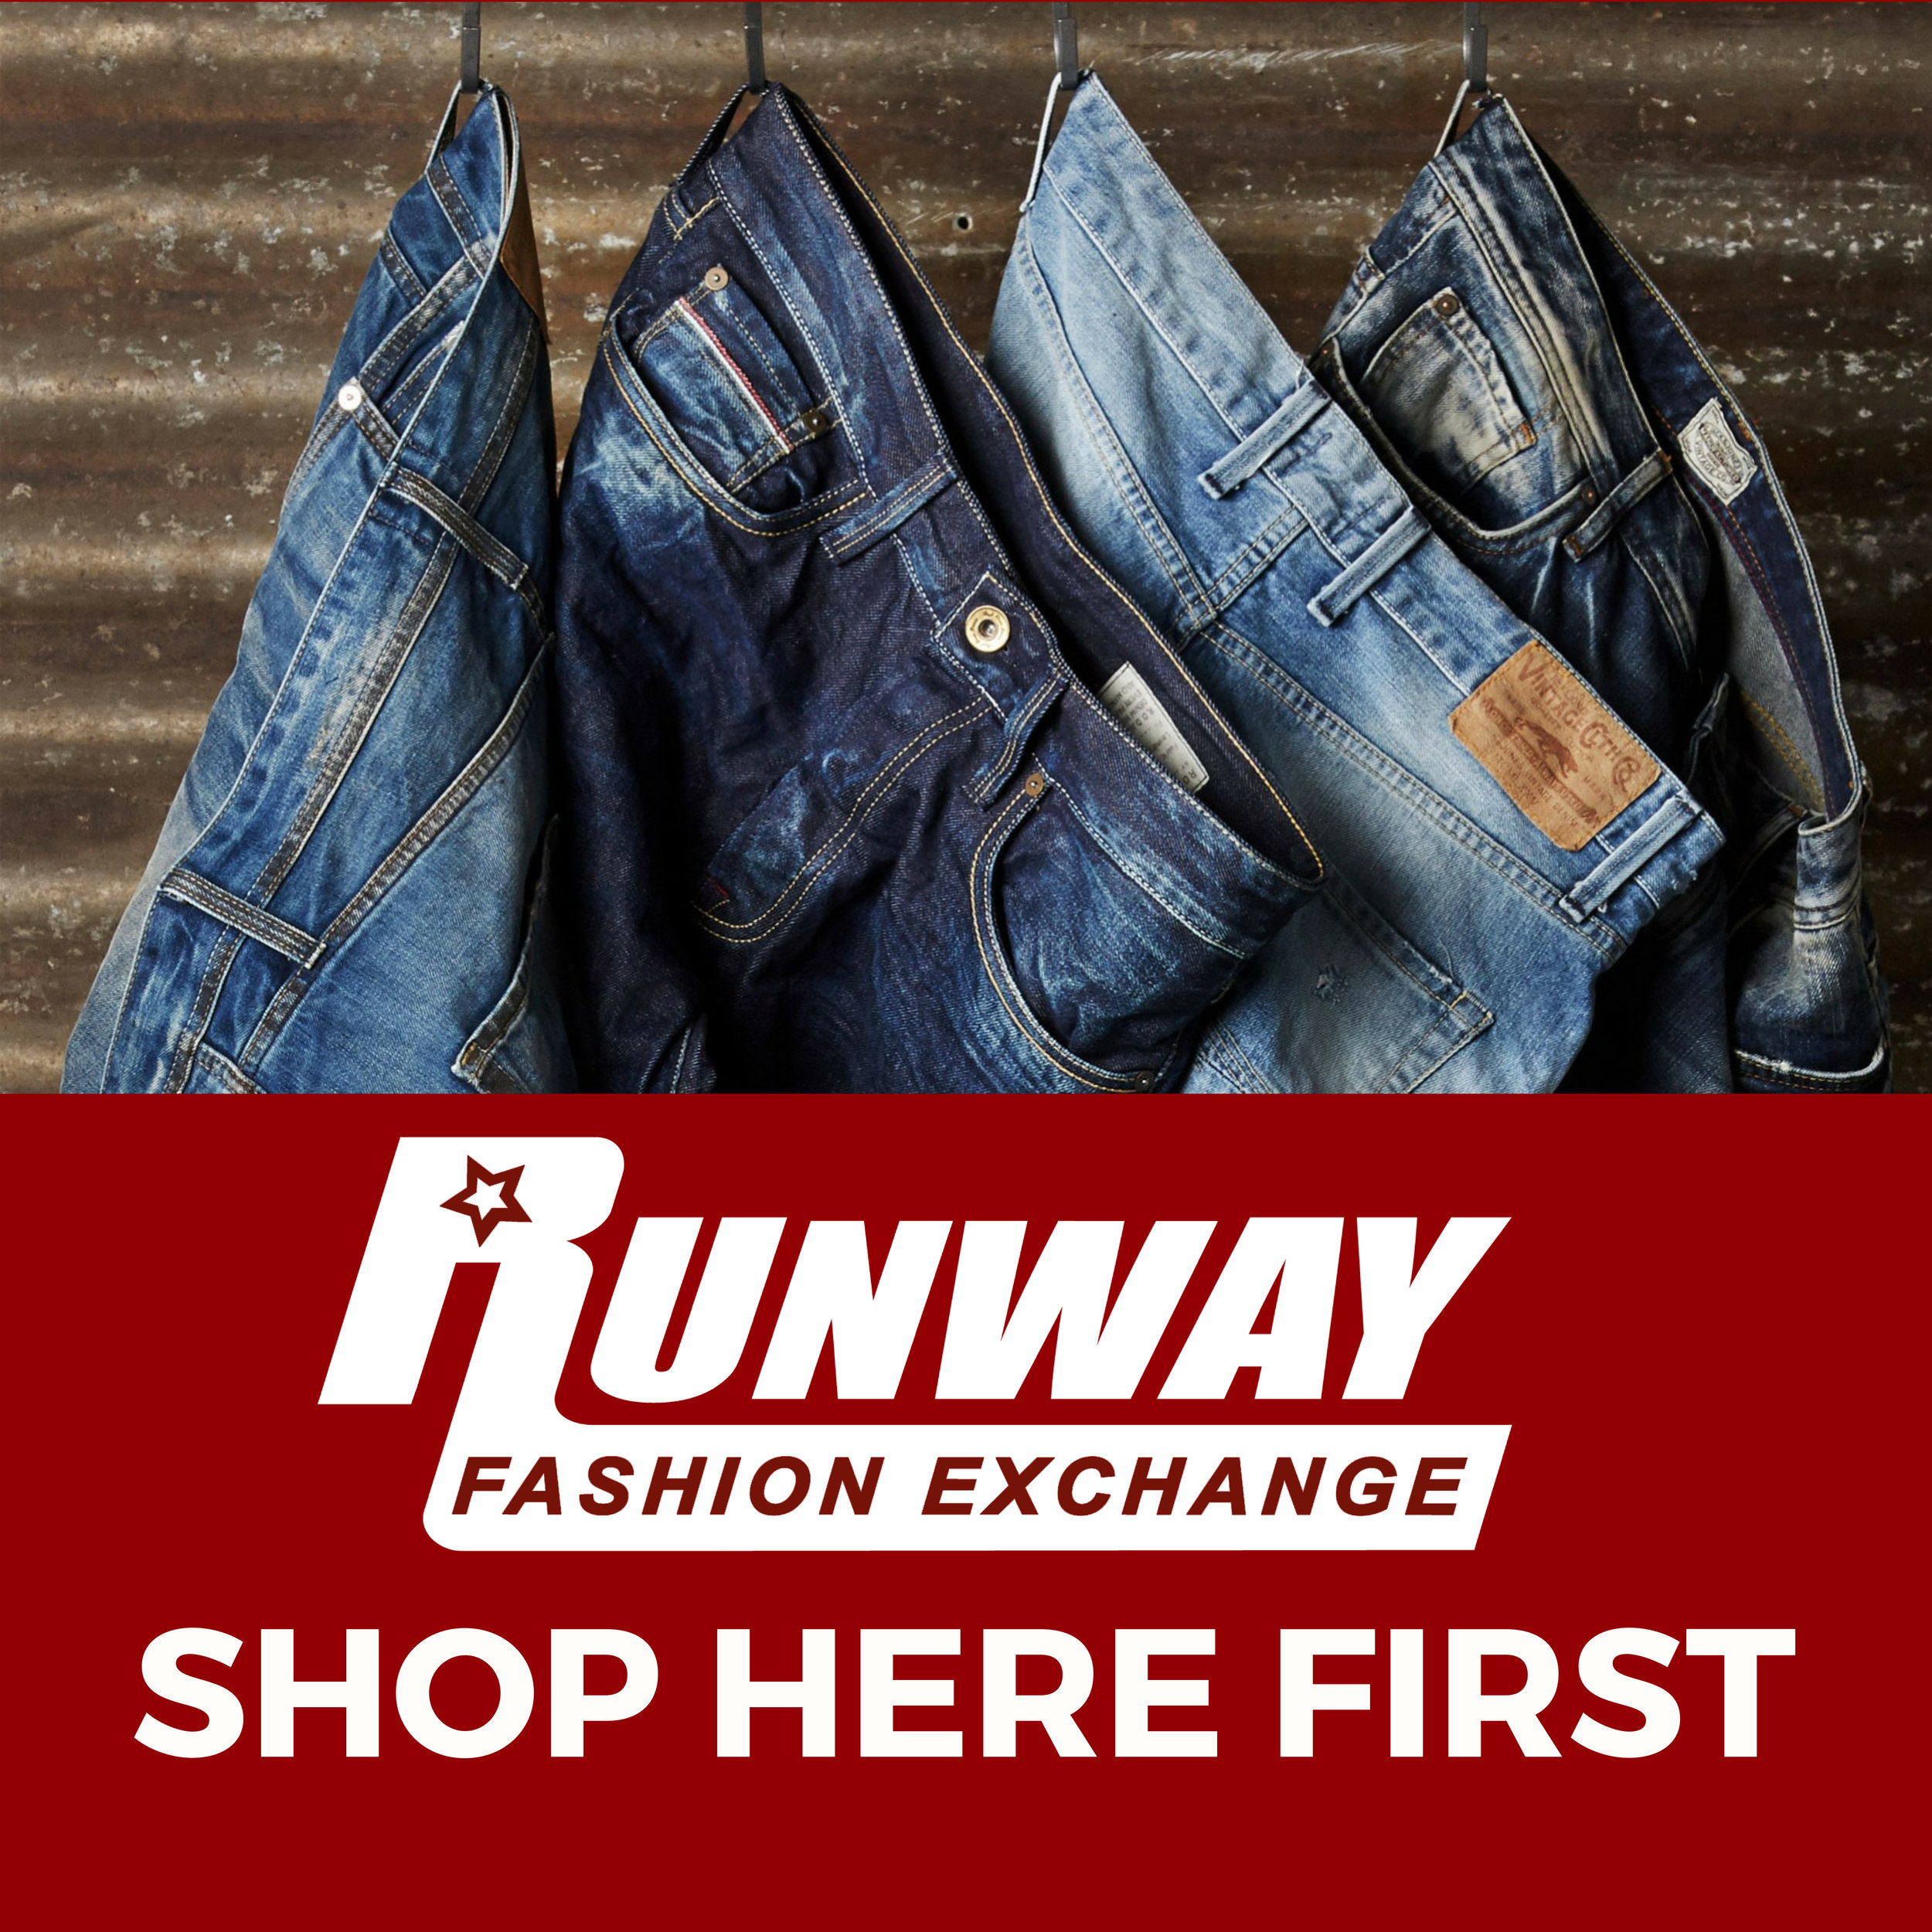 rfe - shop here first jeans - poster 52x52.jpg